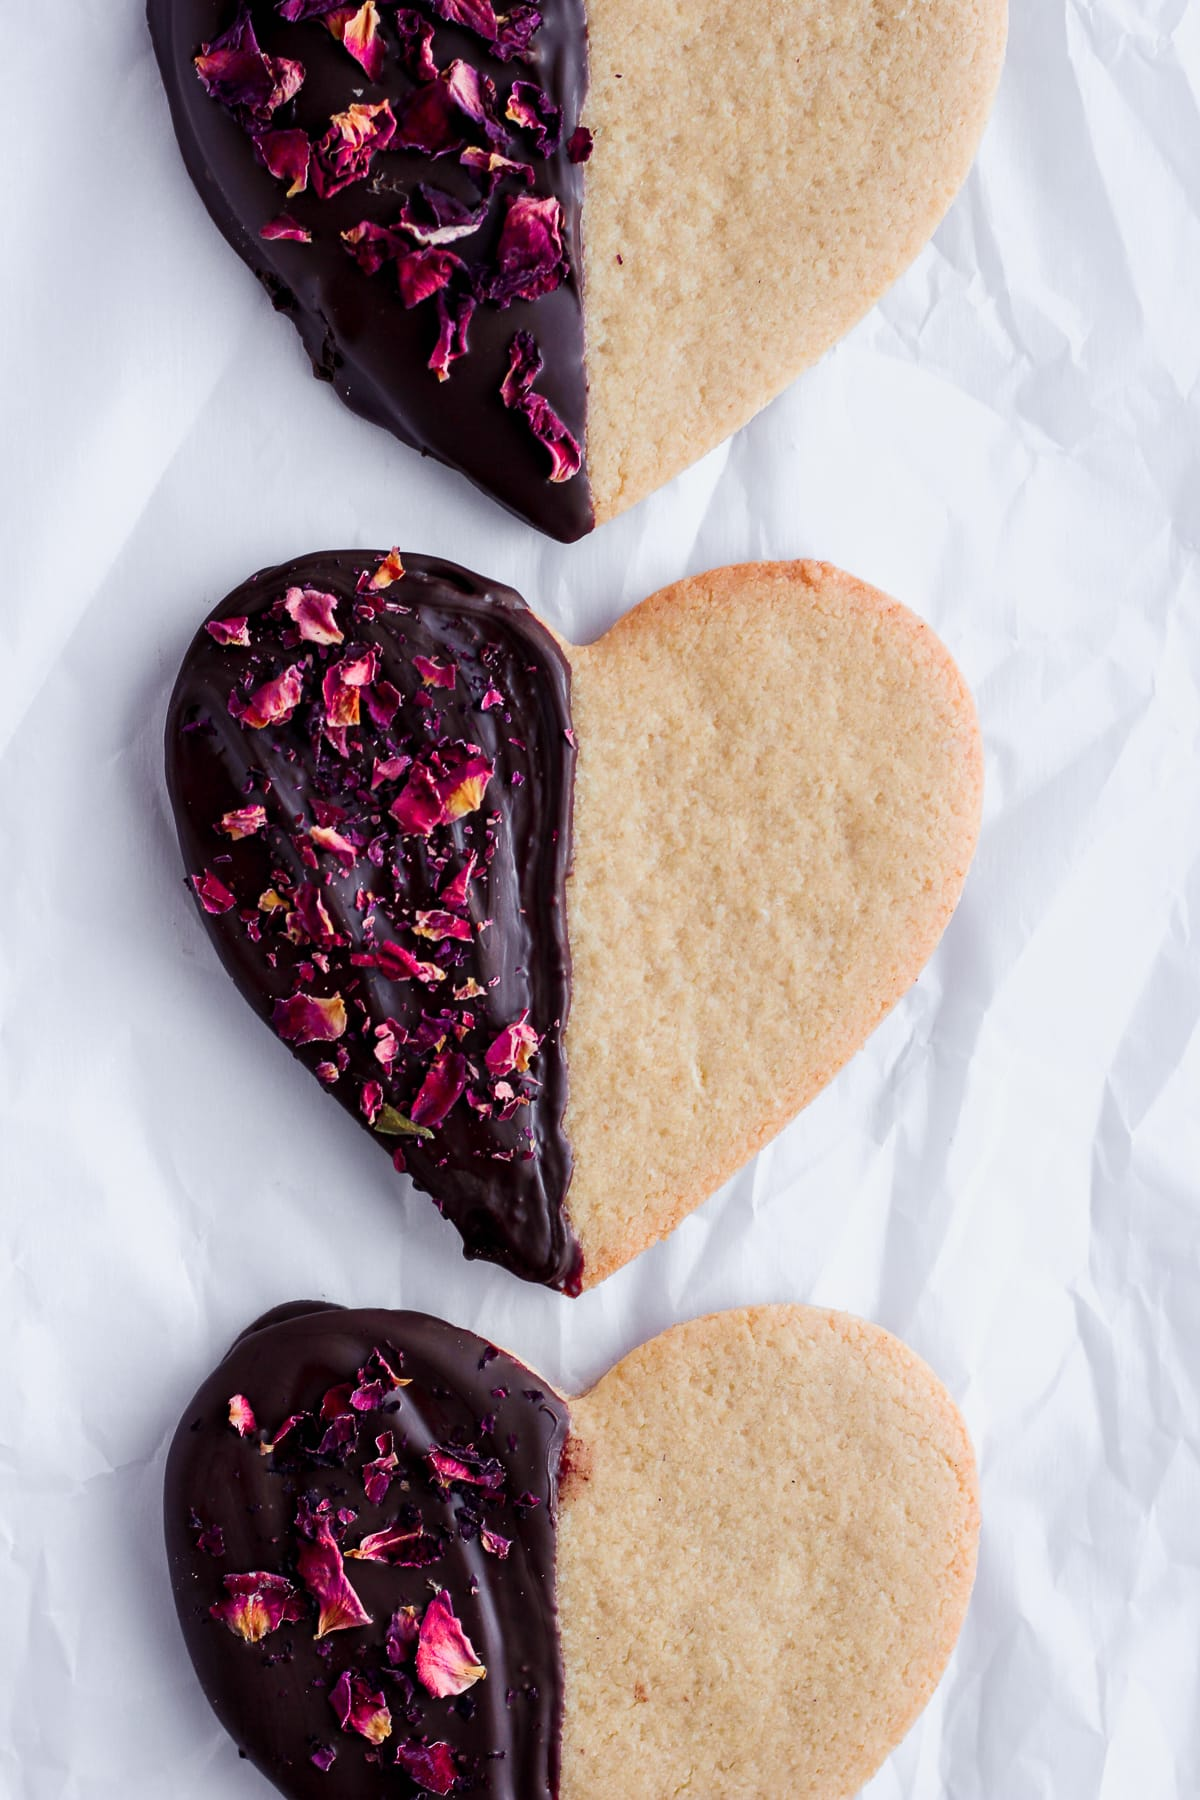 The Best Paleo Sugar Cookies, dipped in chocolate and sprinkled with roses, perfect for valentines day! #paleo #valentinesday